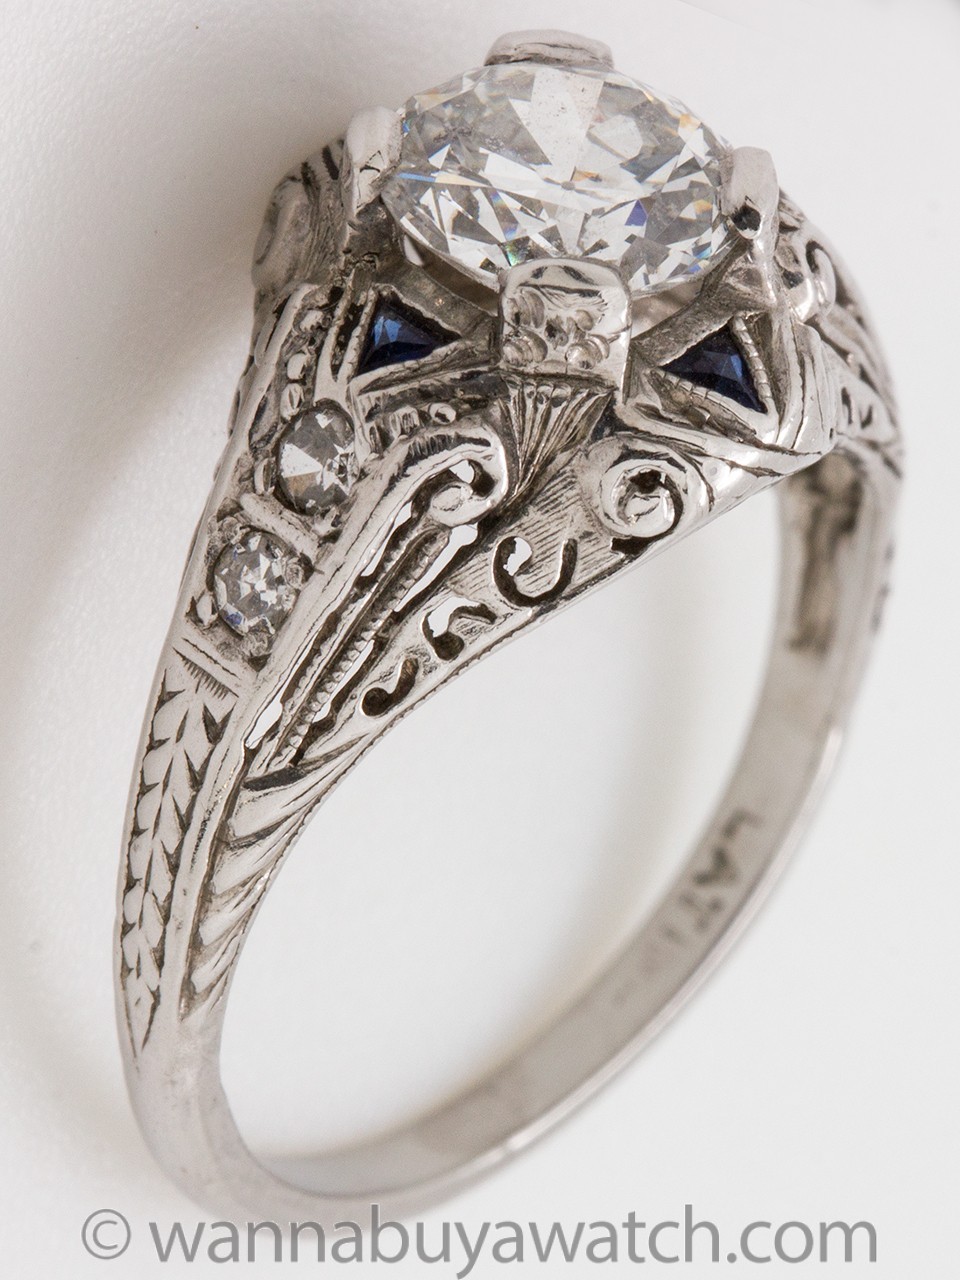 Vintage Art Deco Diamond Sapphire Platinum Engagement Ring 0.89ct E-SI2 circa 1920s